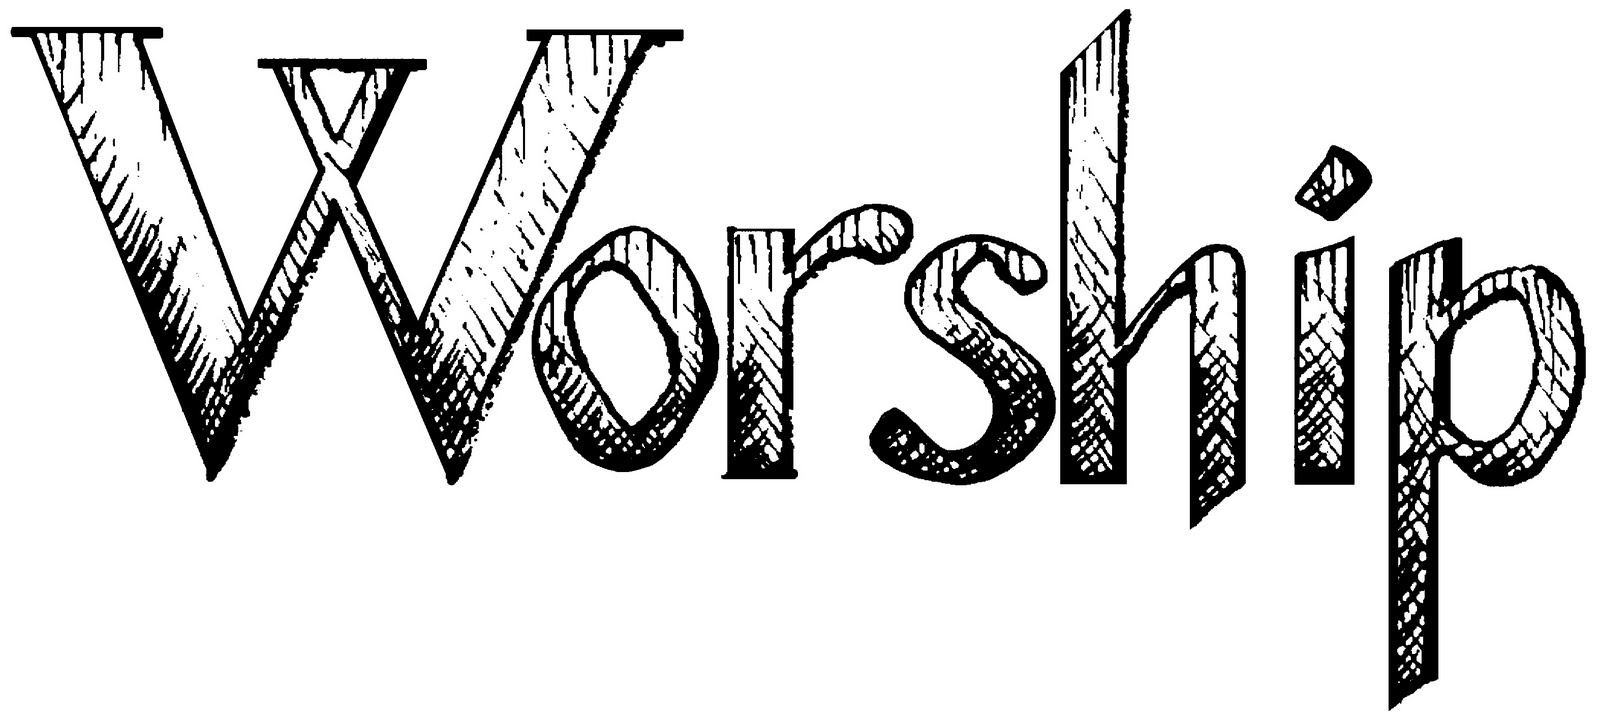 Worship clipart black and white. Awesome collection digital coloring